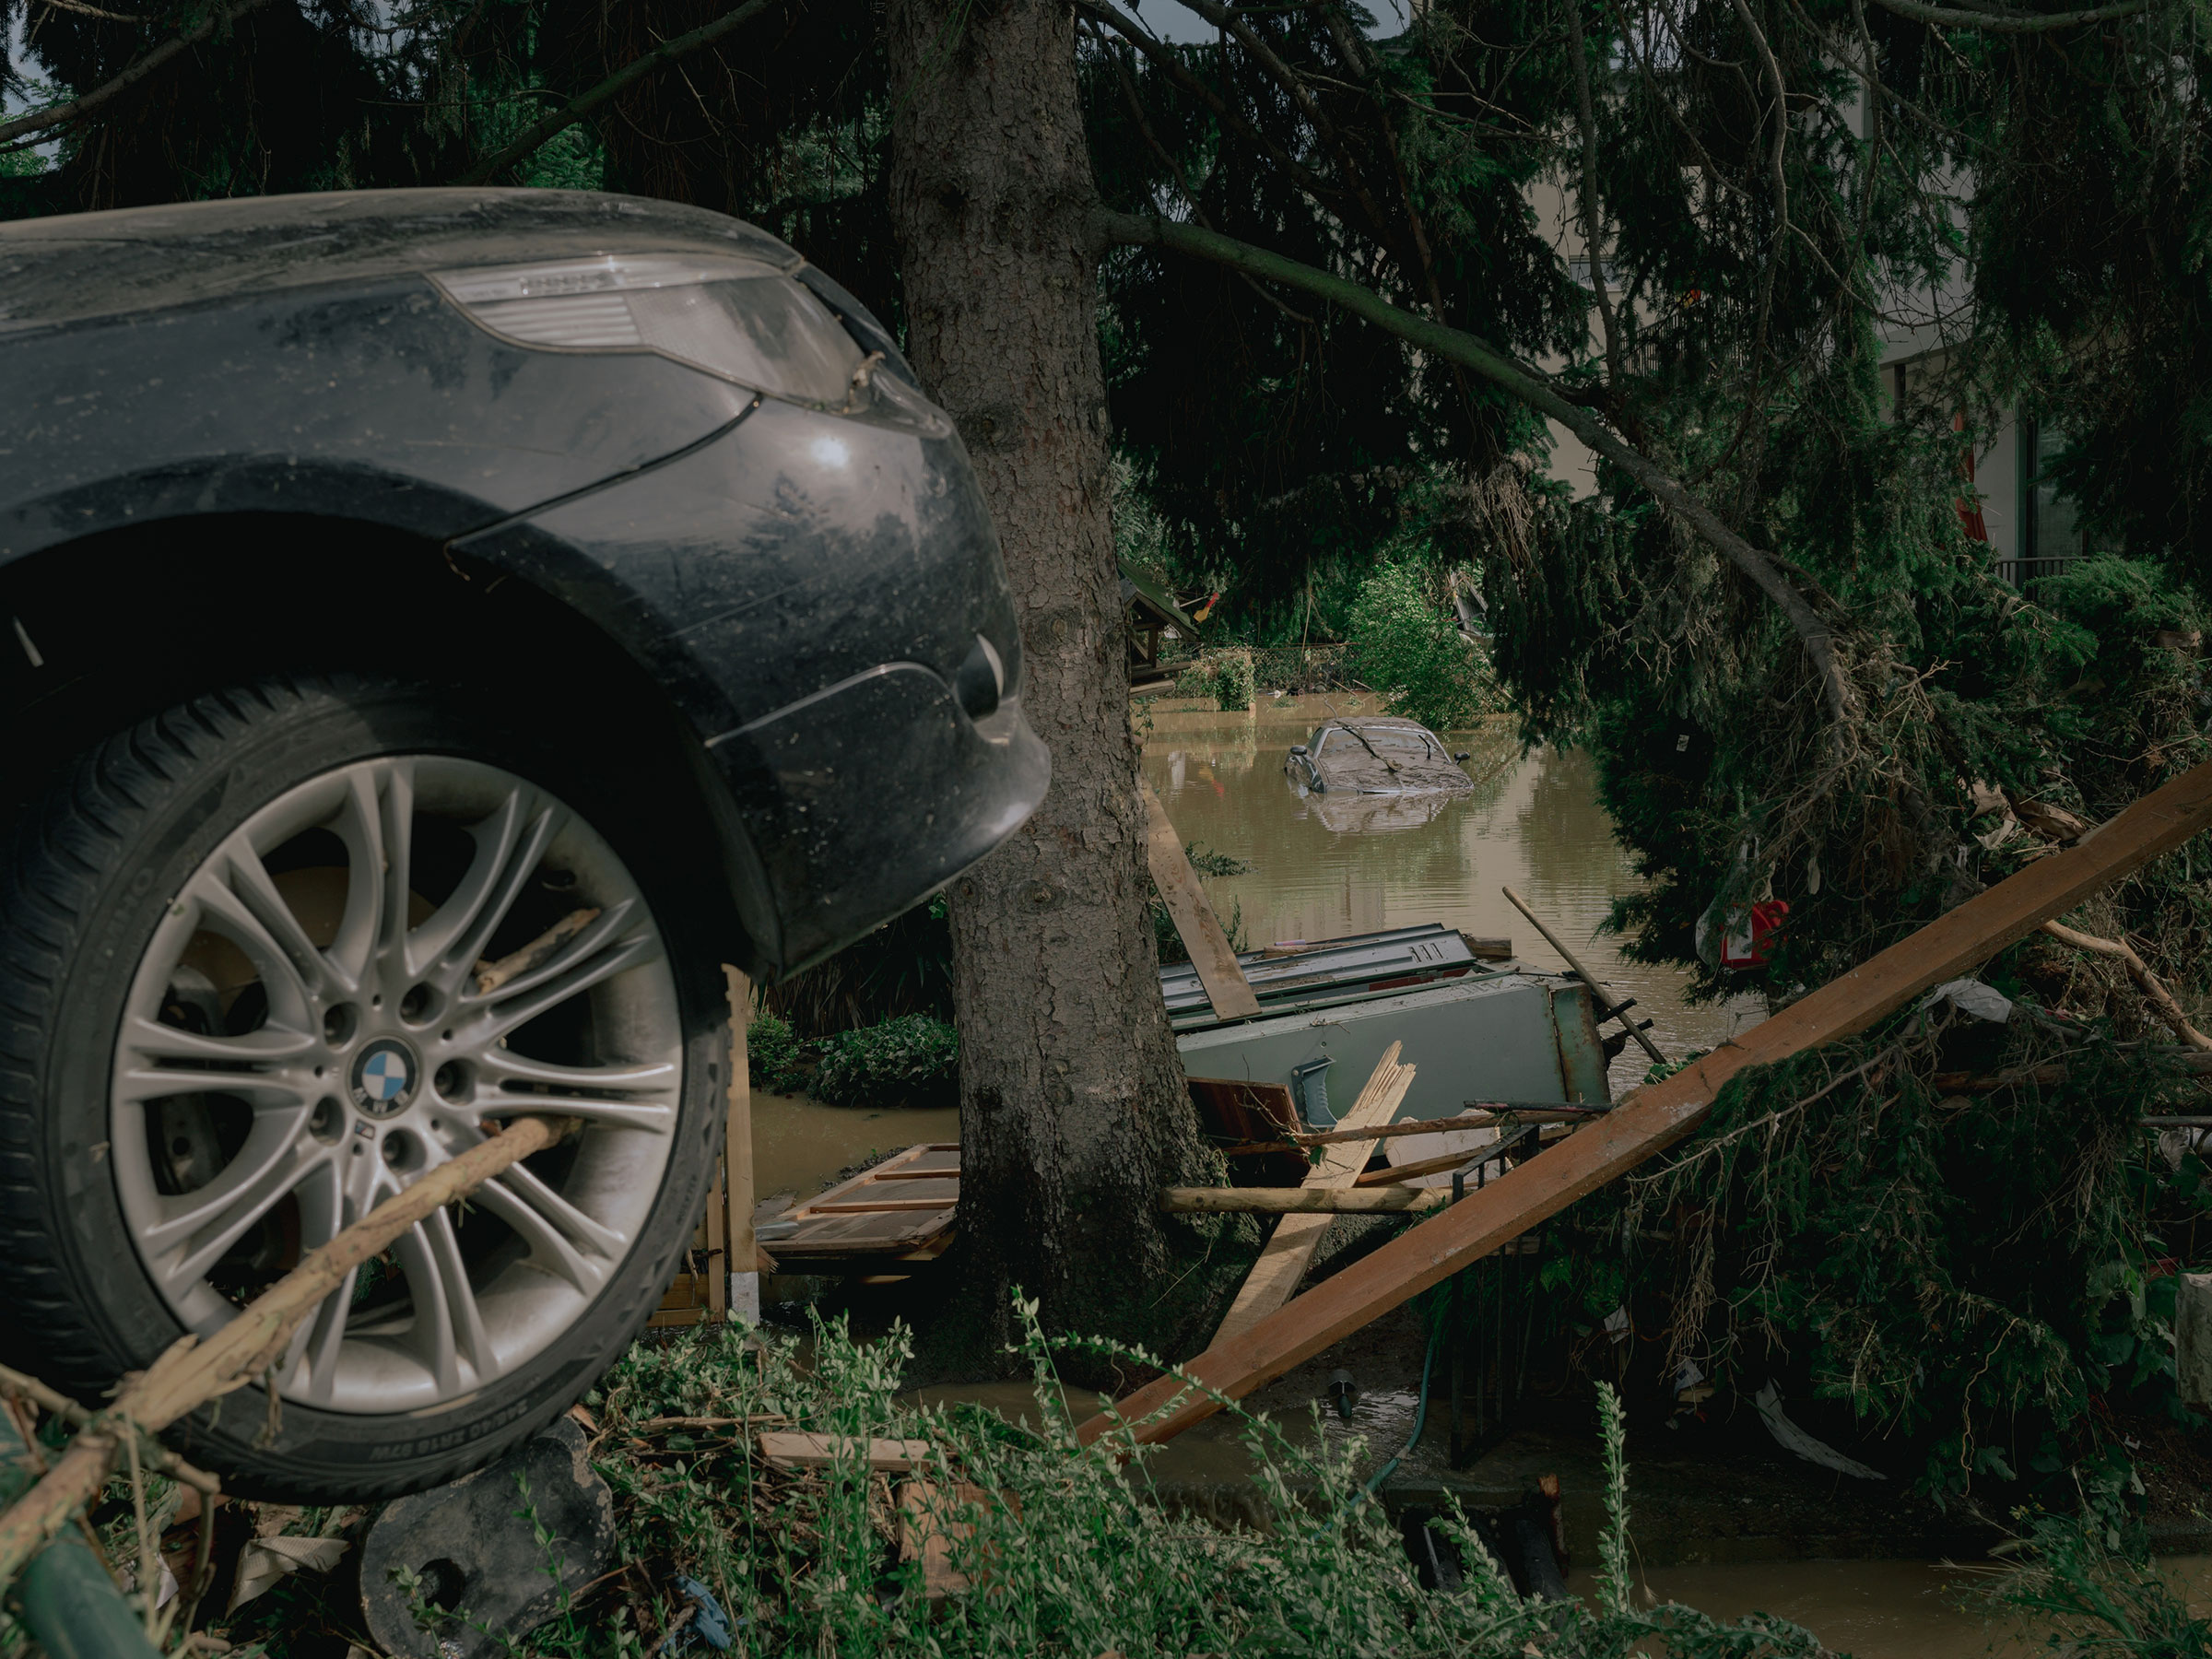 Cars and flood damage in the village of Ahrweiler, Germany, on July 15.